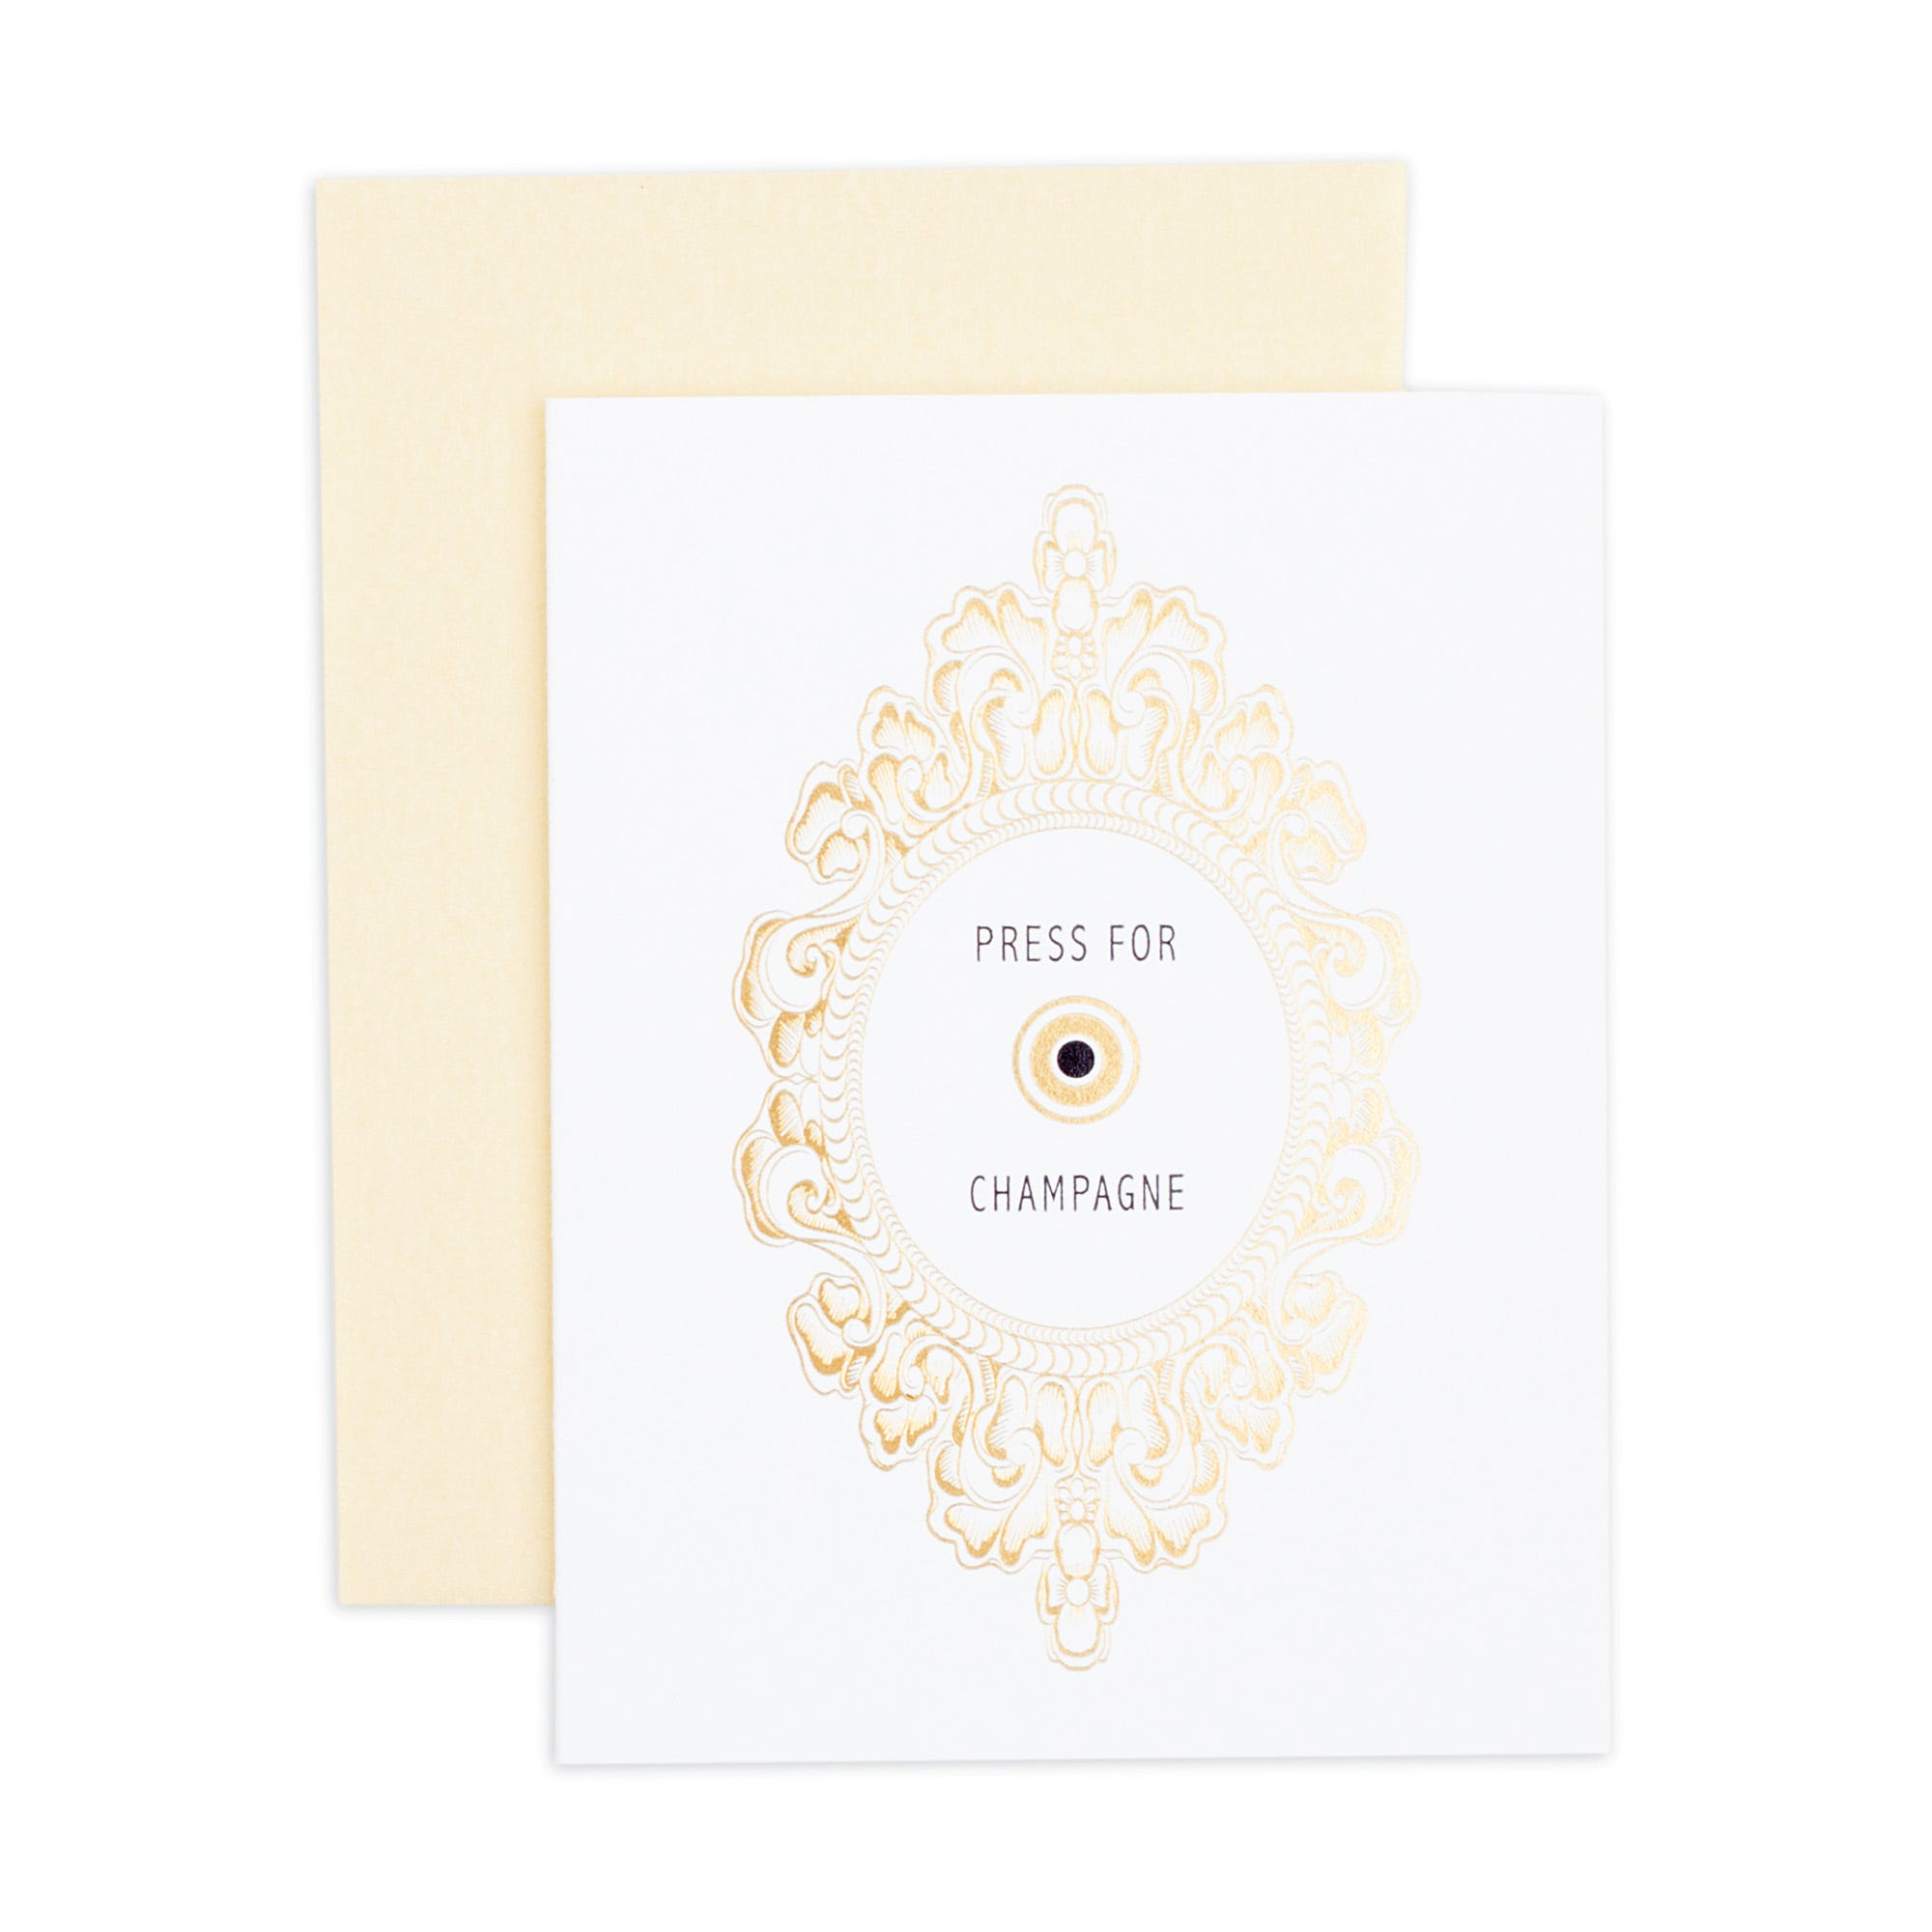 Press for Champagne Card